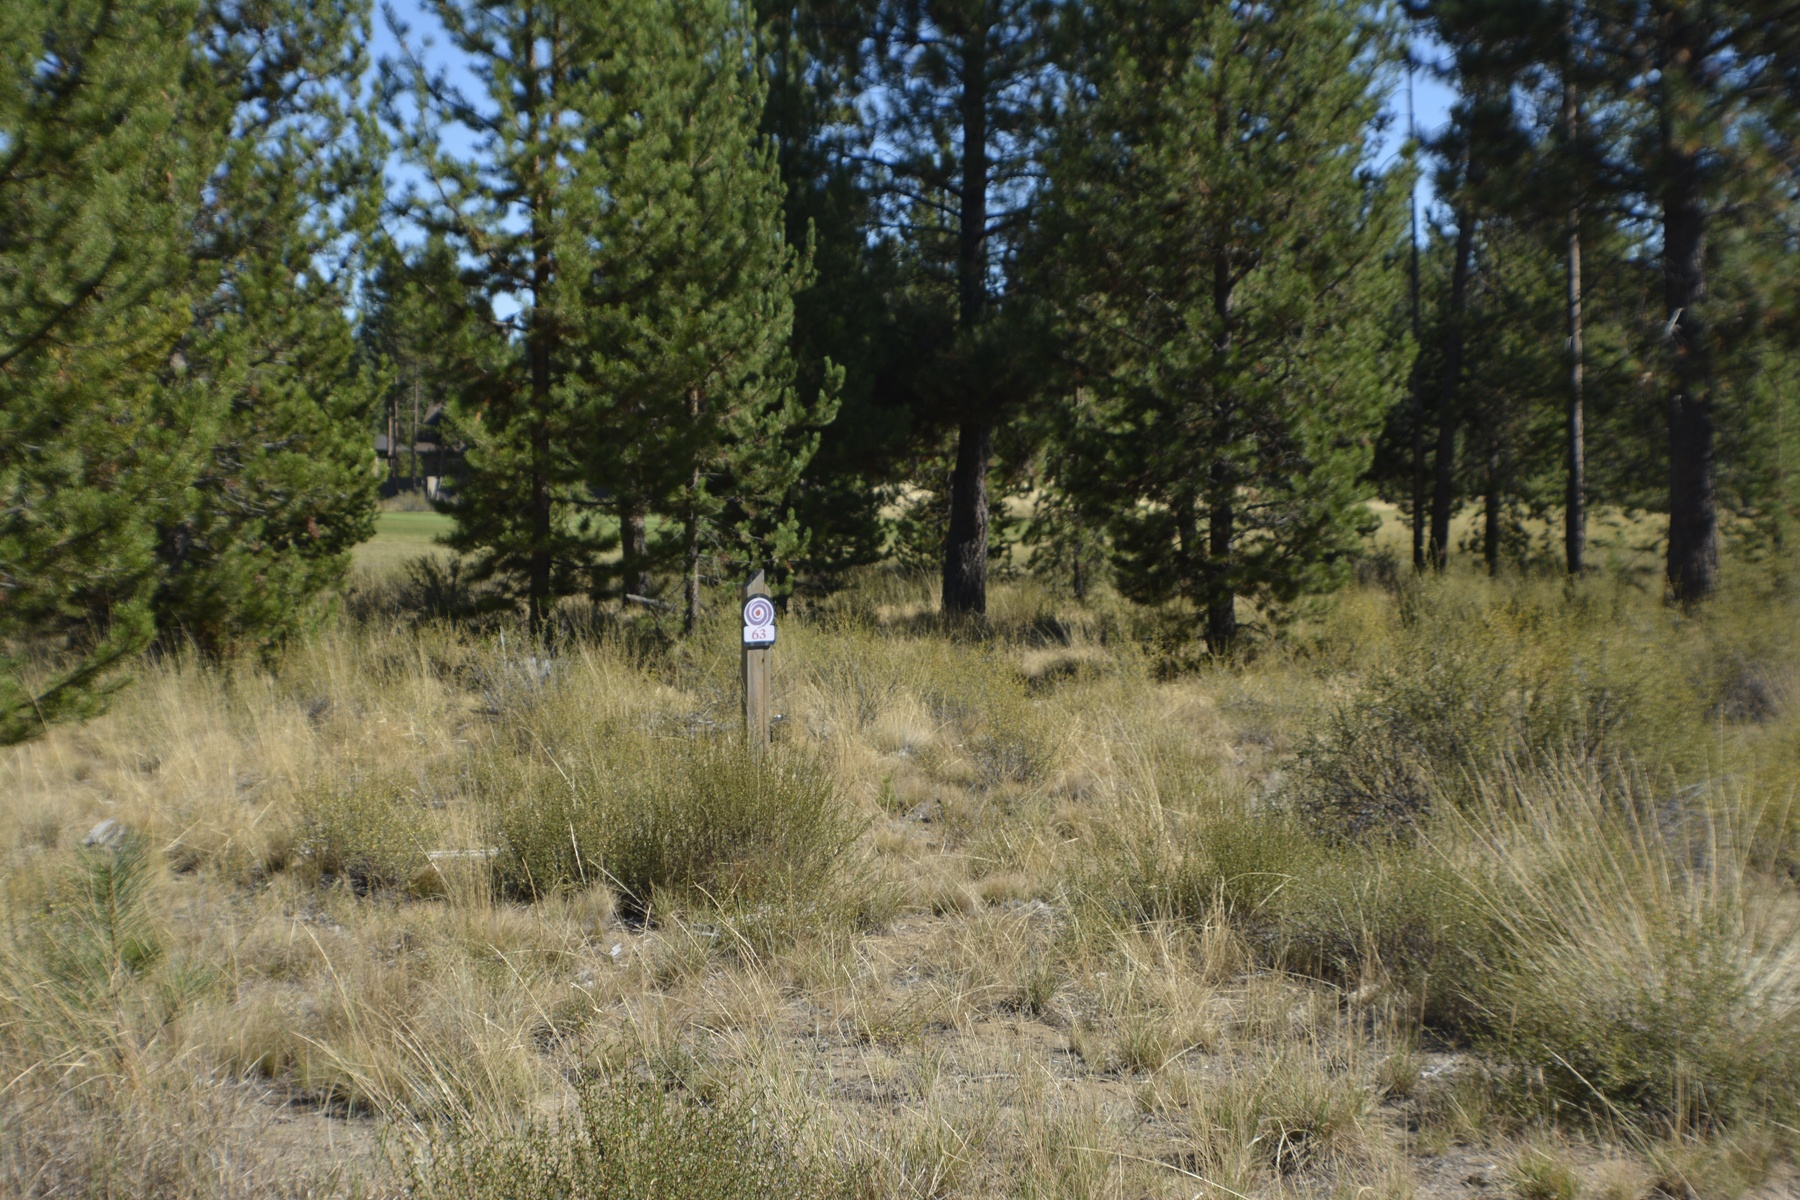 Land for Sale at Caldera Springs Golf Course Lot Other Areas, USA